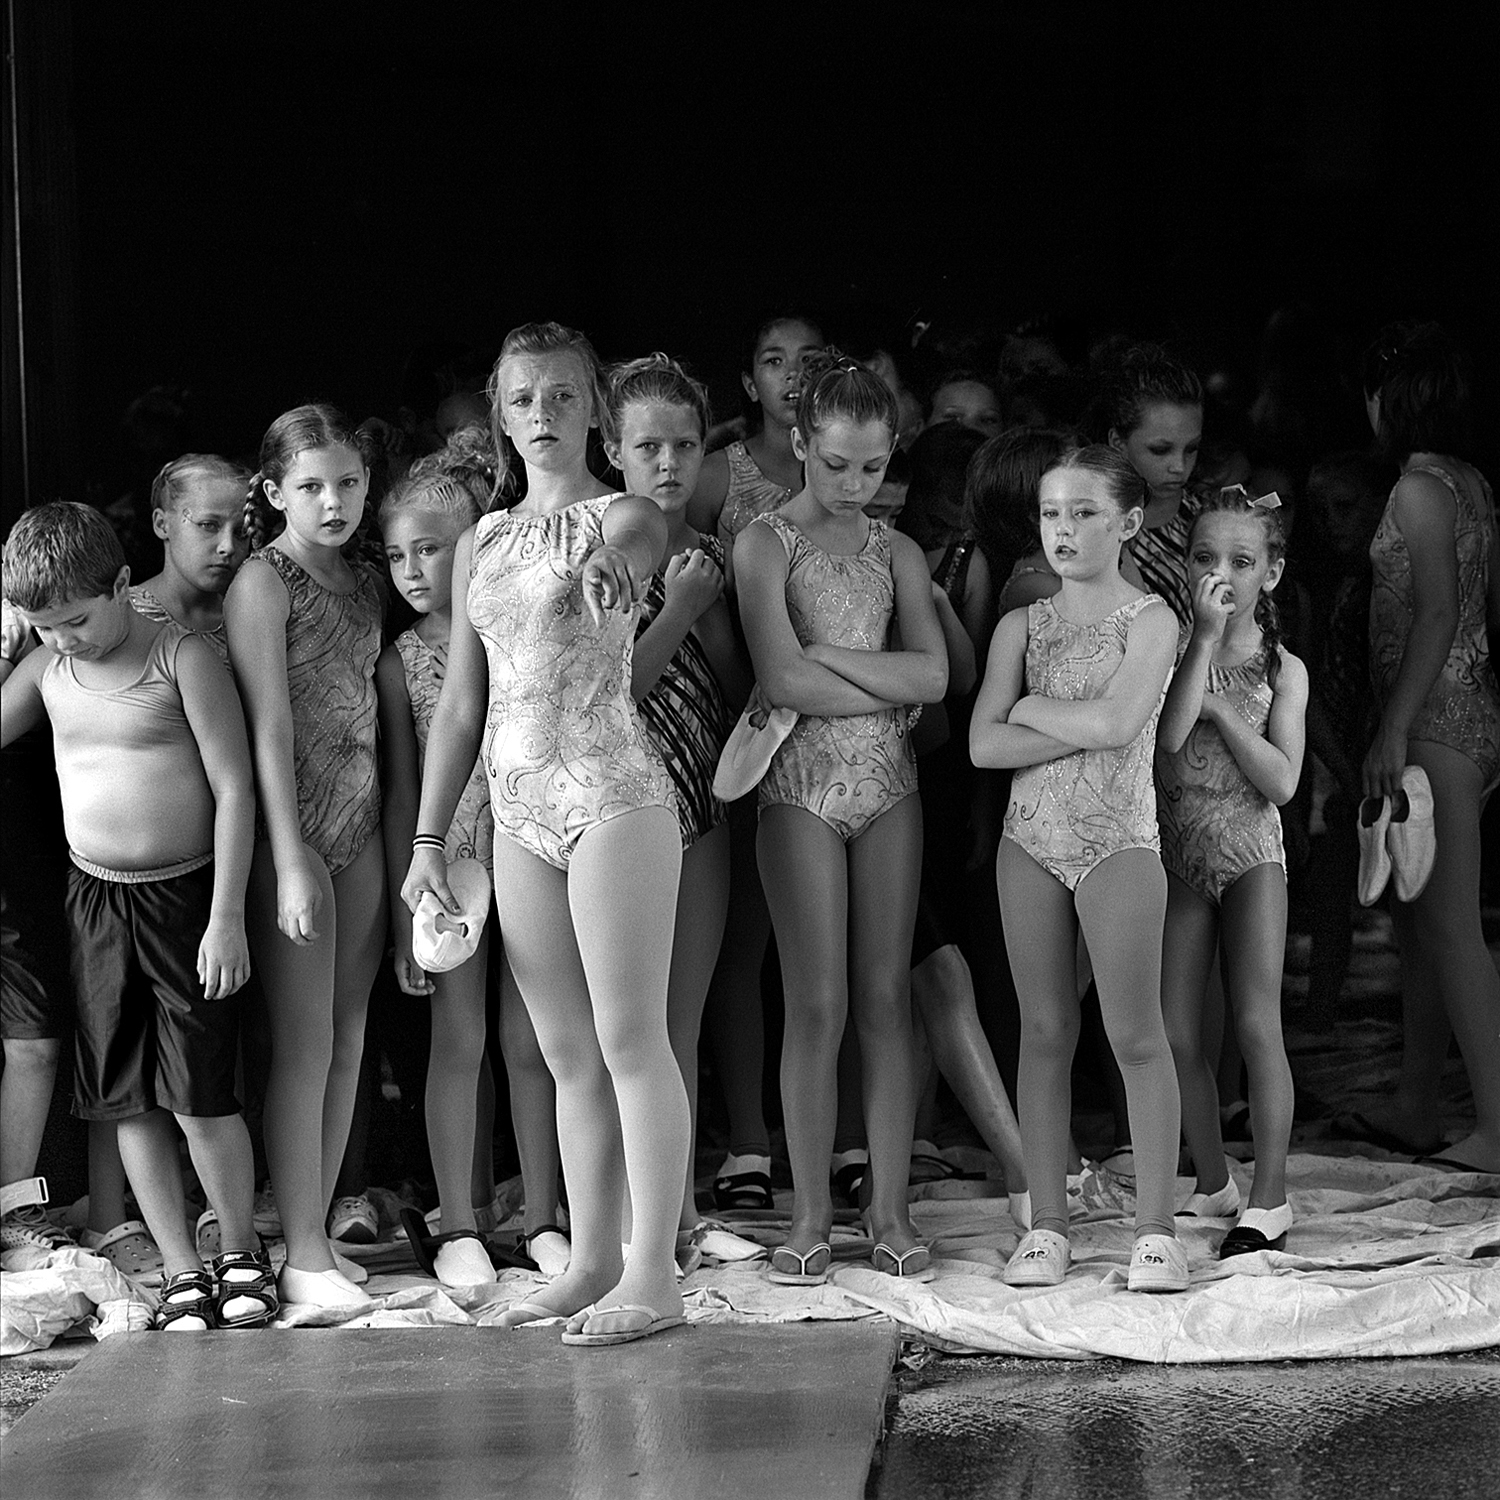 During a rainstorm, performers express concern about the flooding while waiting in the backlot area for their turn to enter the ring.